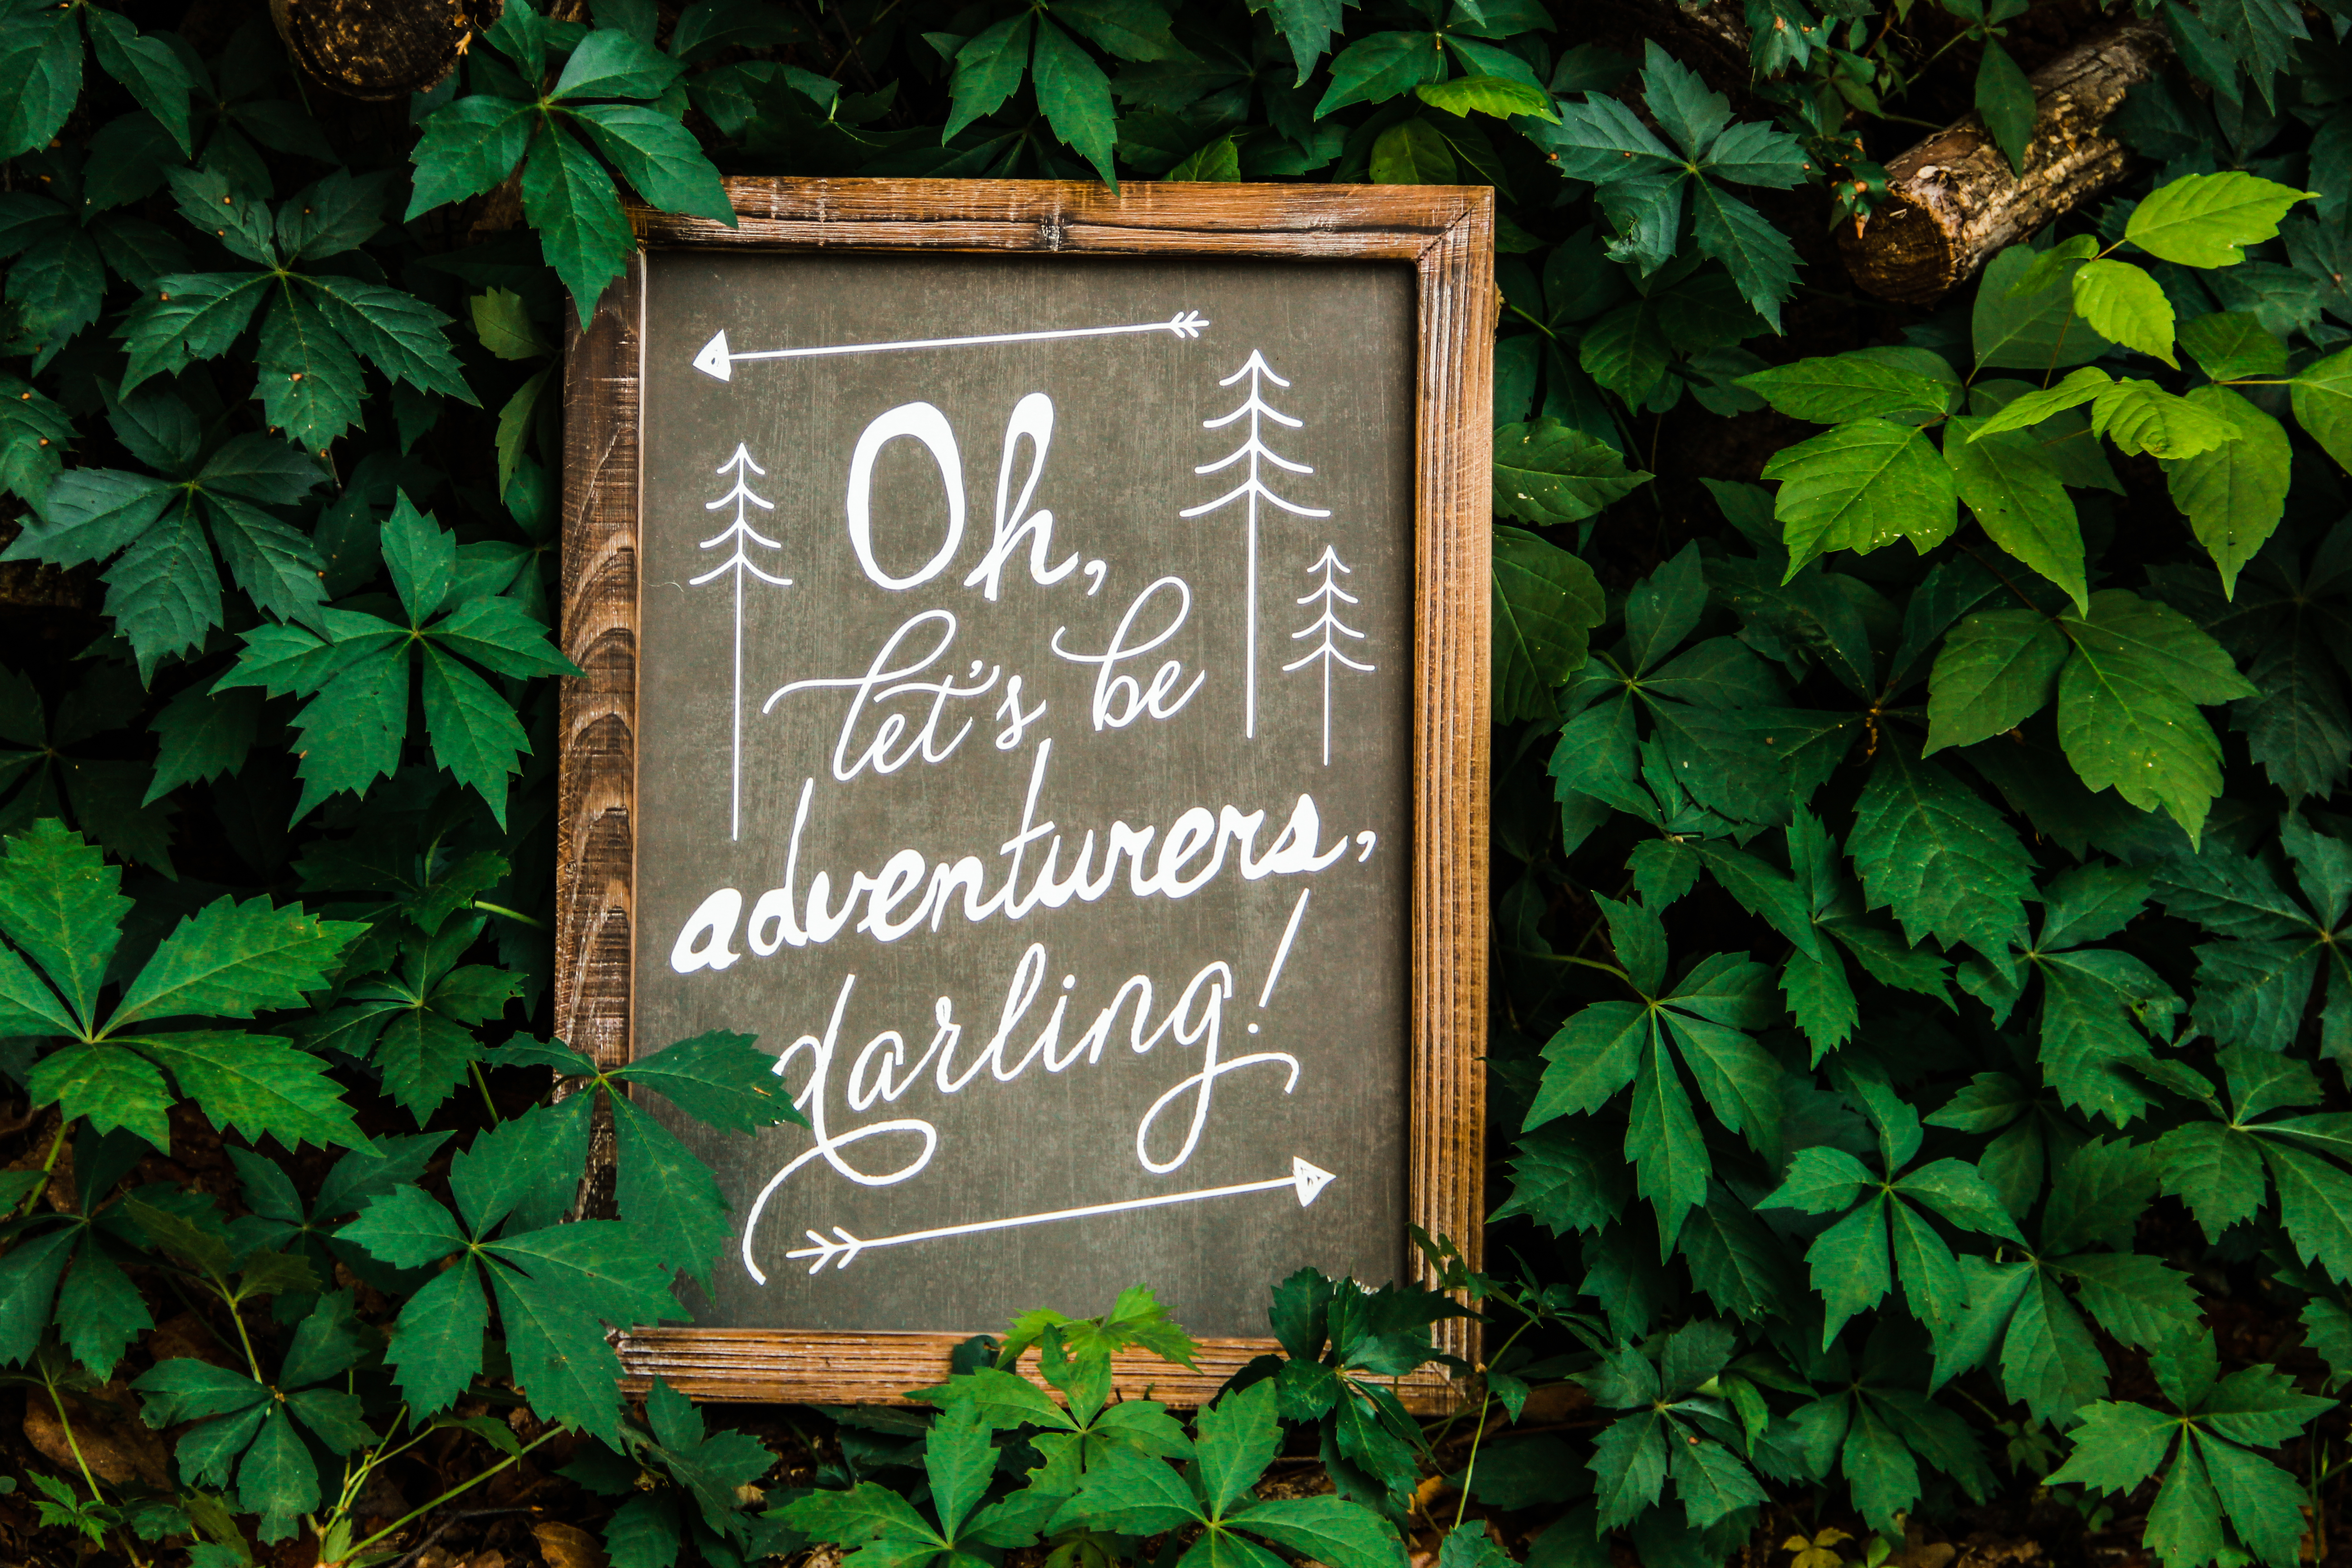 'Oh lets be adventurers darling Sign